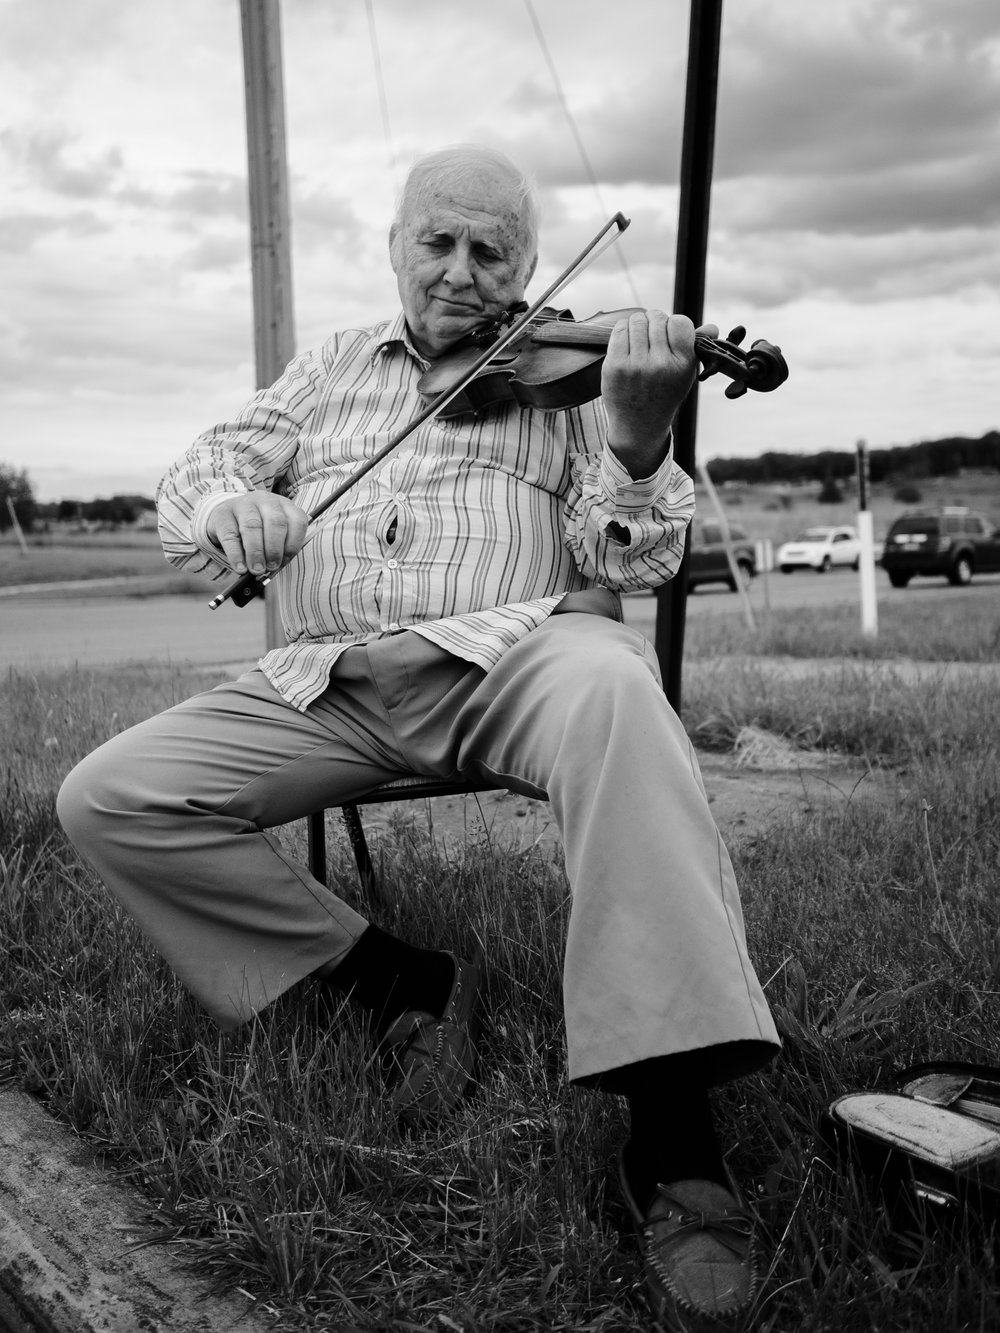 17-05-26_Violin_Player_5268156.JPG